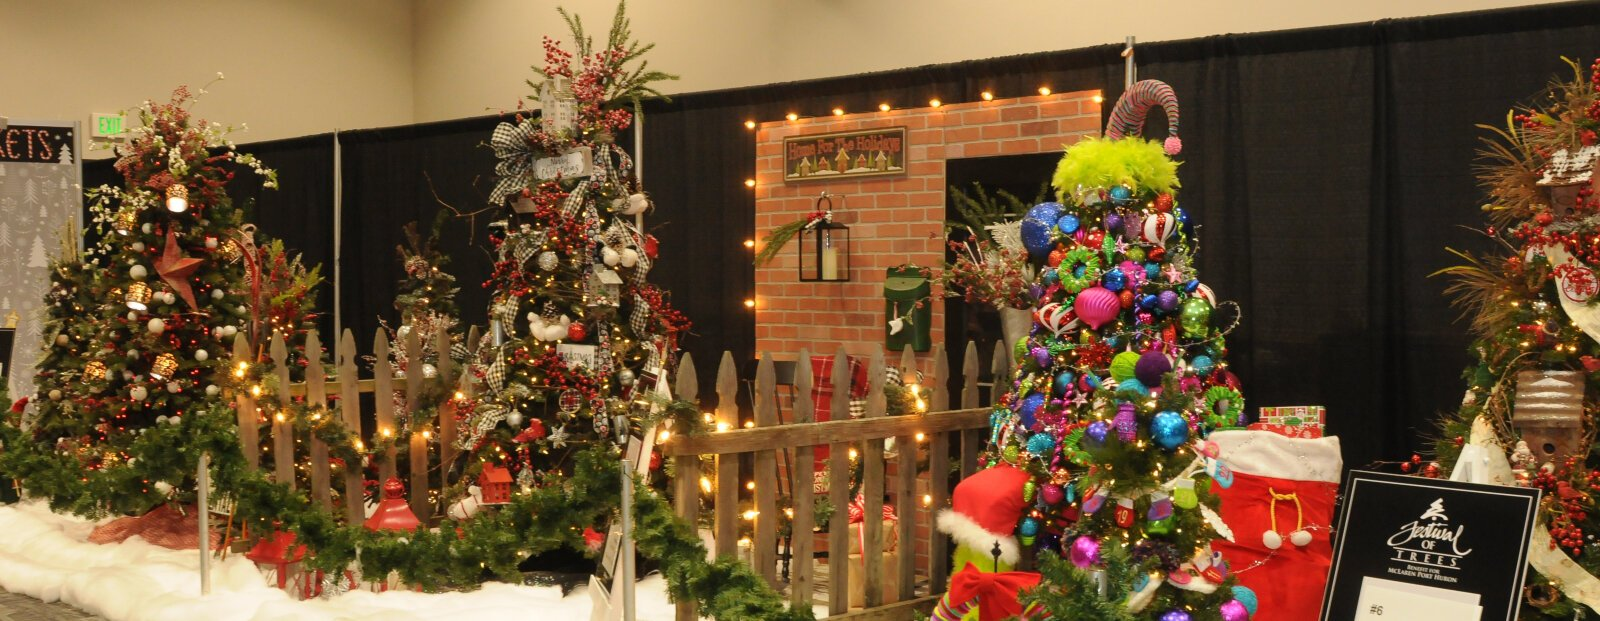 The annual Festival of Trees will support programs at McLaren Port Huron hospital.